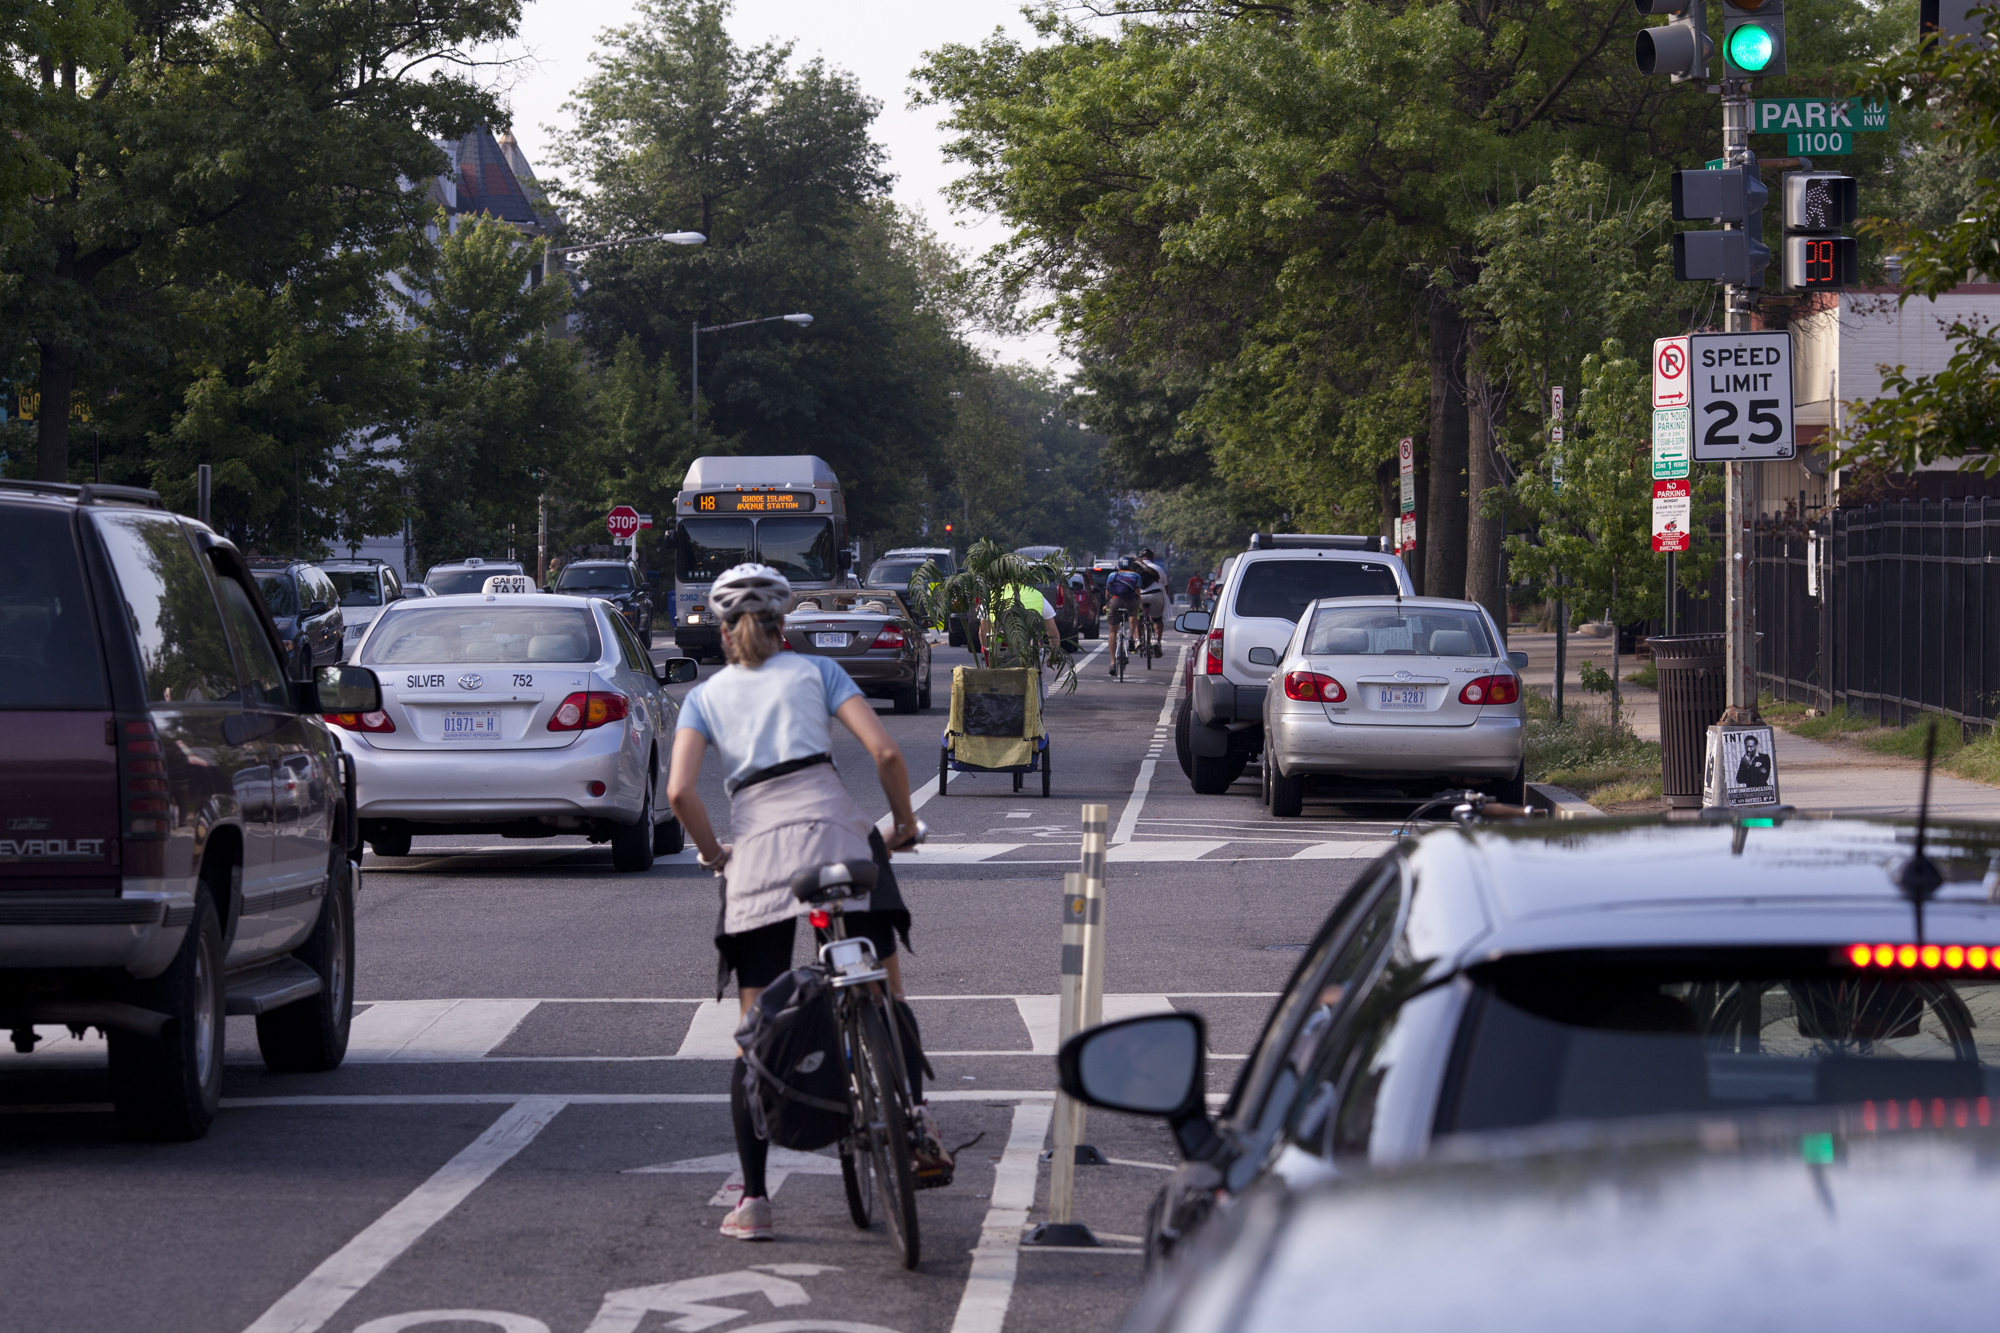 11 Street NW bike lane. Hop on in and join the thousands of fellow bike commuters in DC!